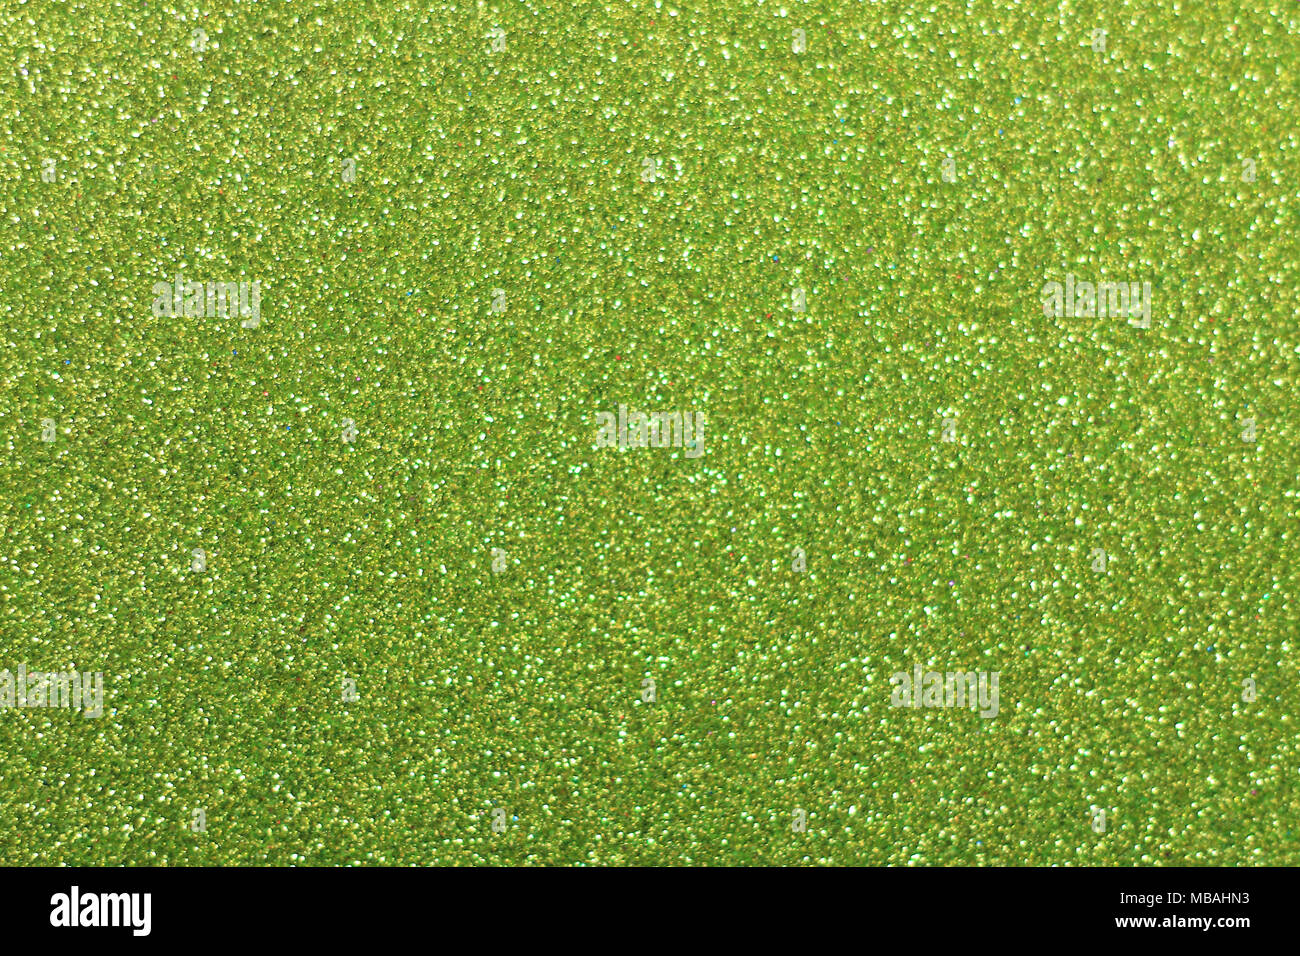 green blue pebble grainy sand textured abstract background backdrop - Stock Image